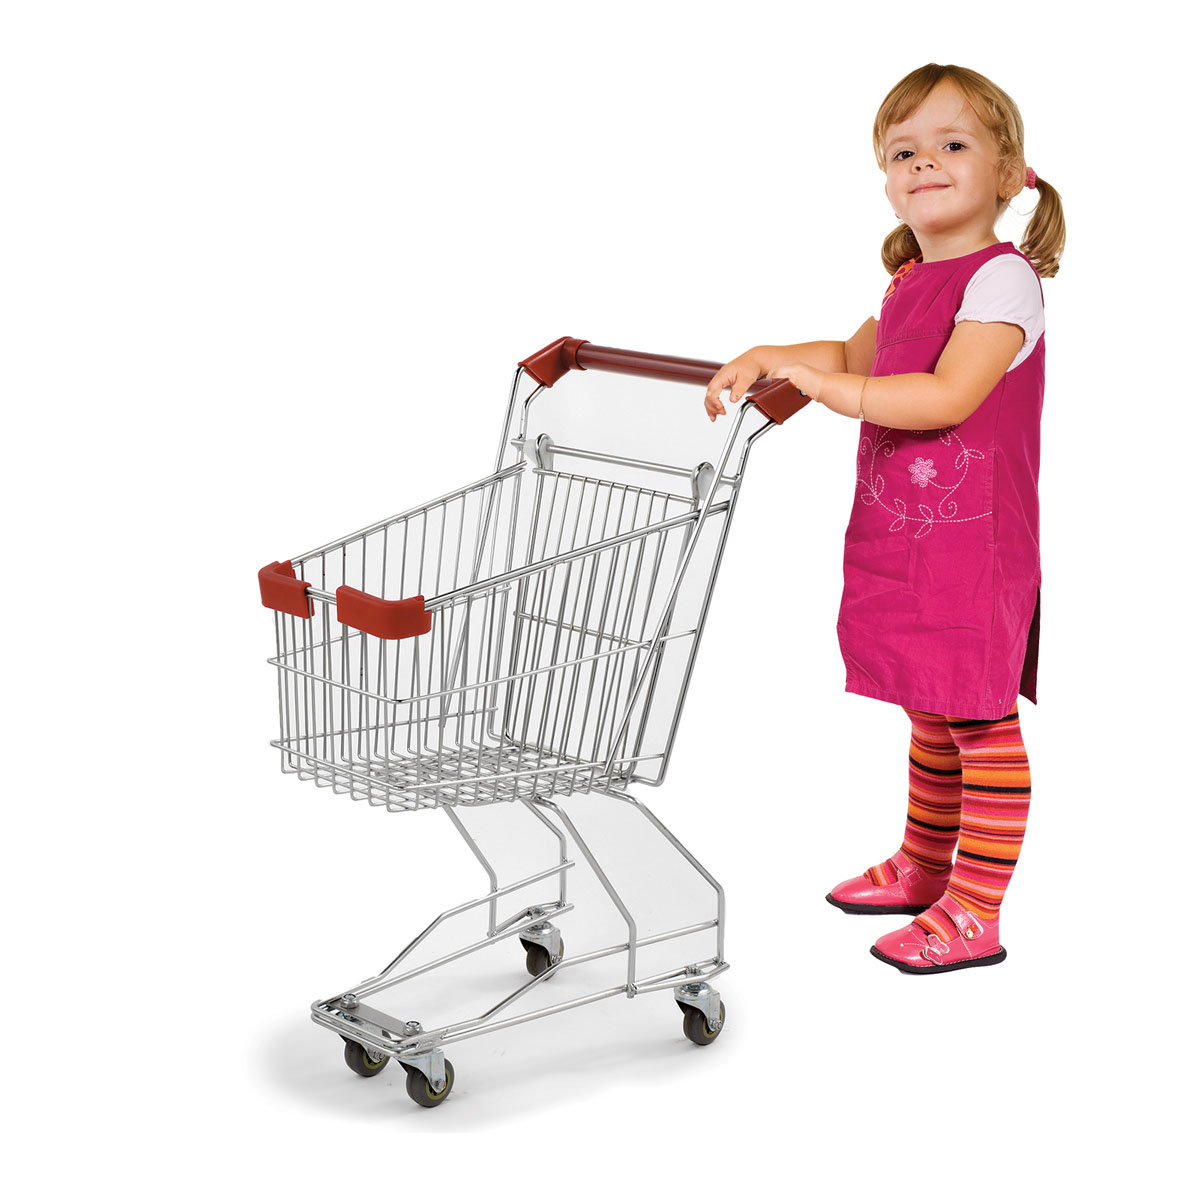 Wholesale Grocery Shopping Carts In-Stock at Specialty Store Services